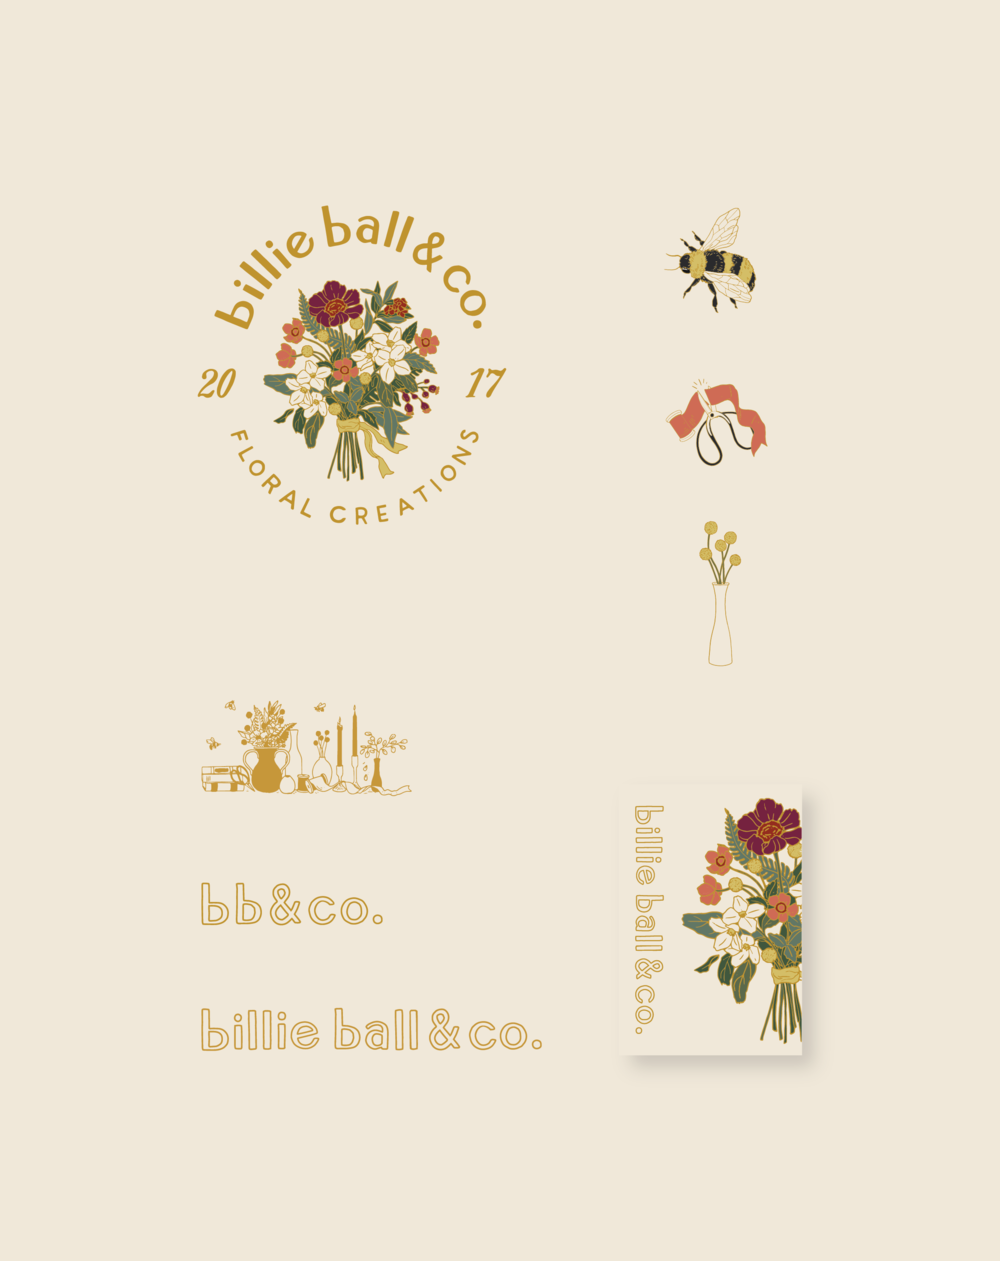 billie ball & co. | Branding